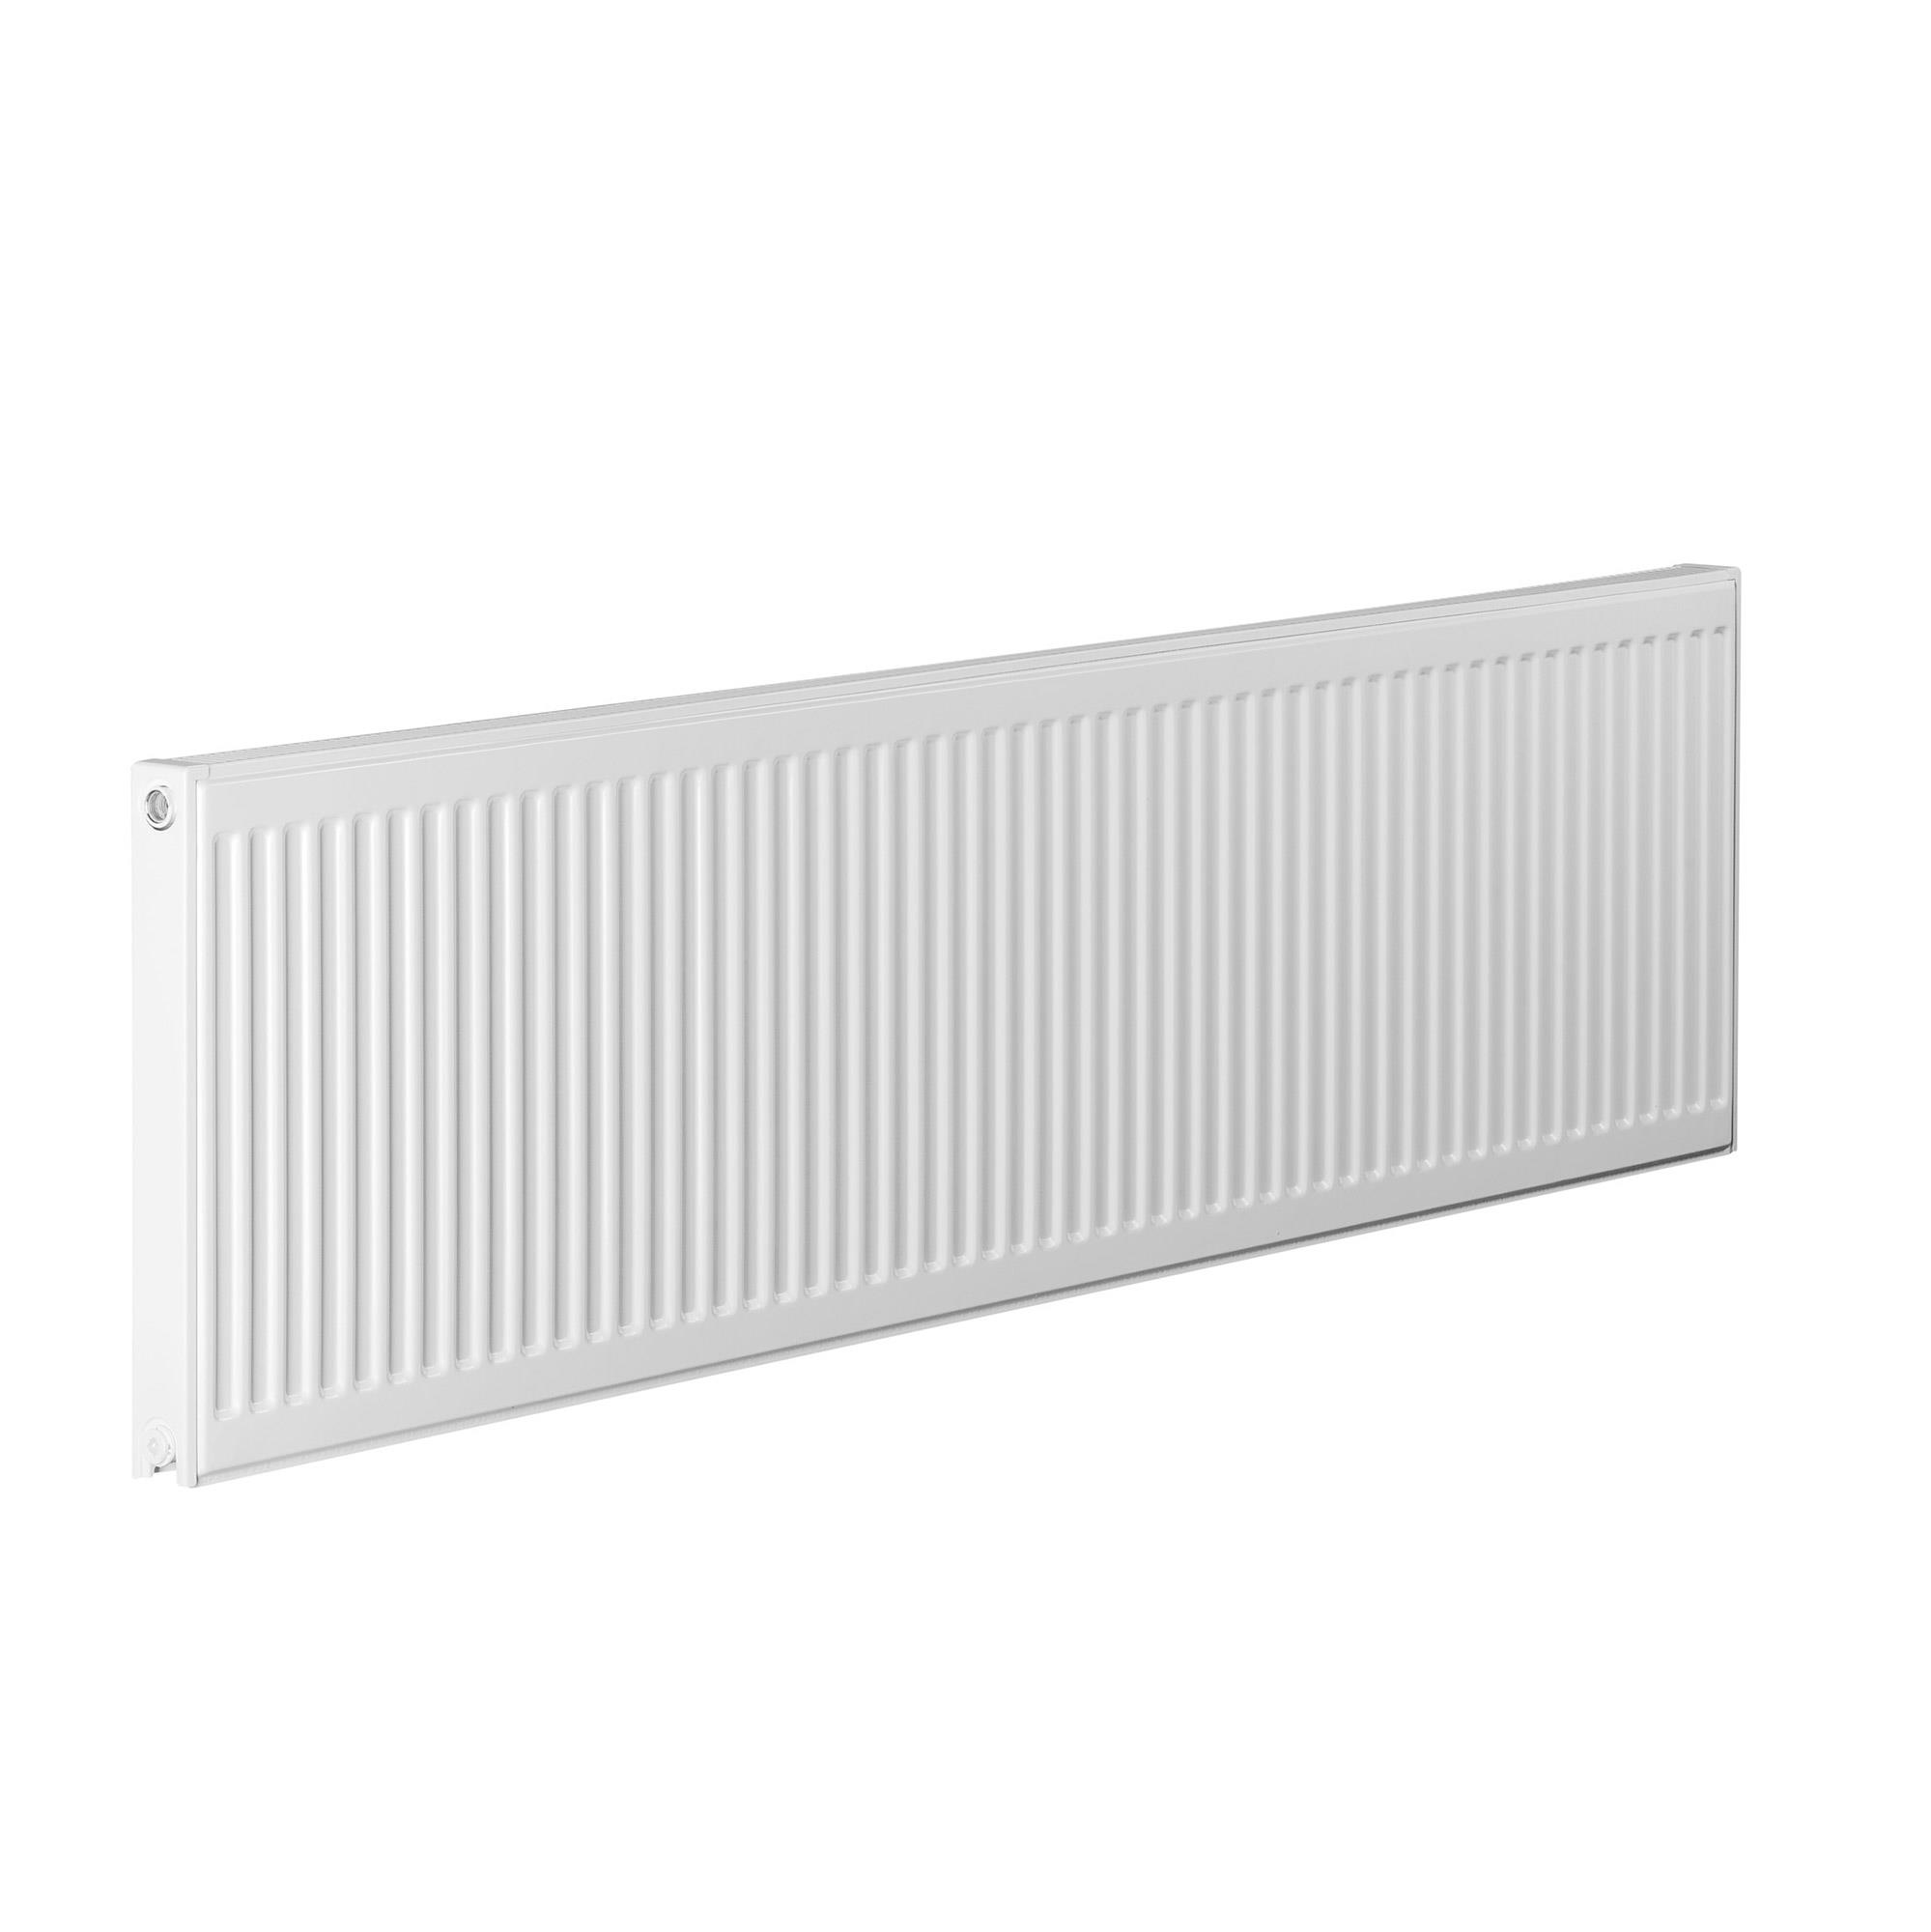 prorad type 22 double panel compact radiator 400mm high. Black Bedroom Furniture Sets. Home Design Ideas